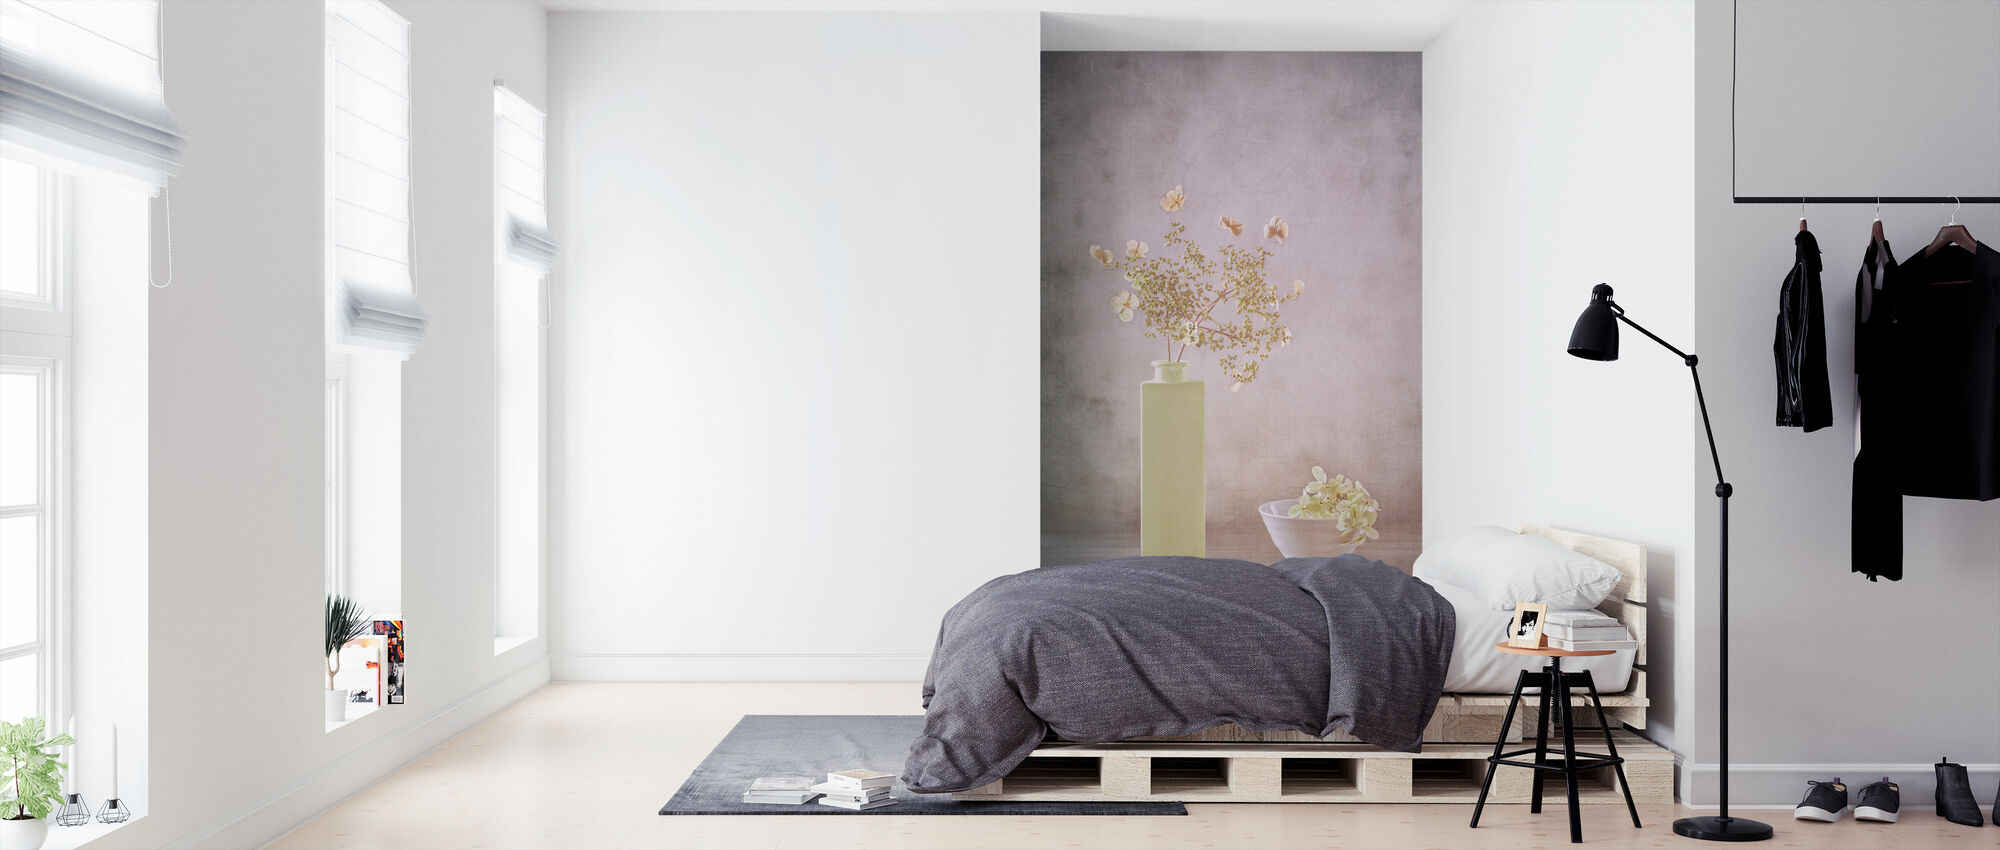 Morning Light - Wallpaper - Bedroom